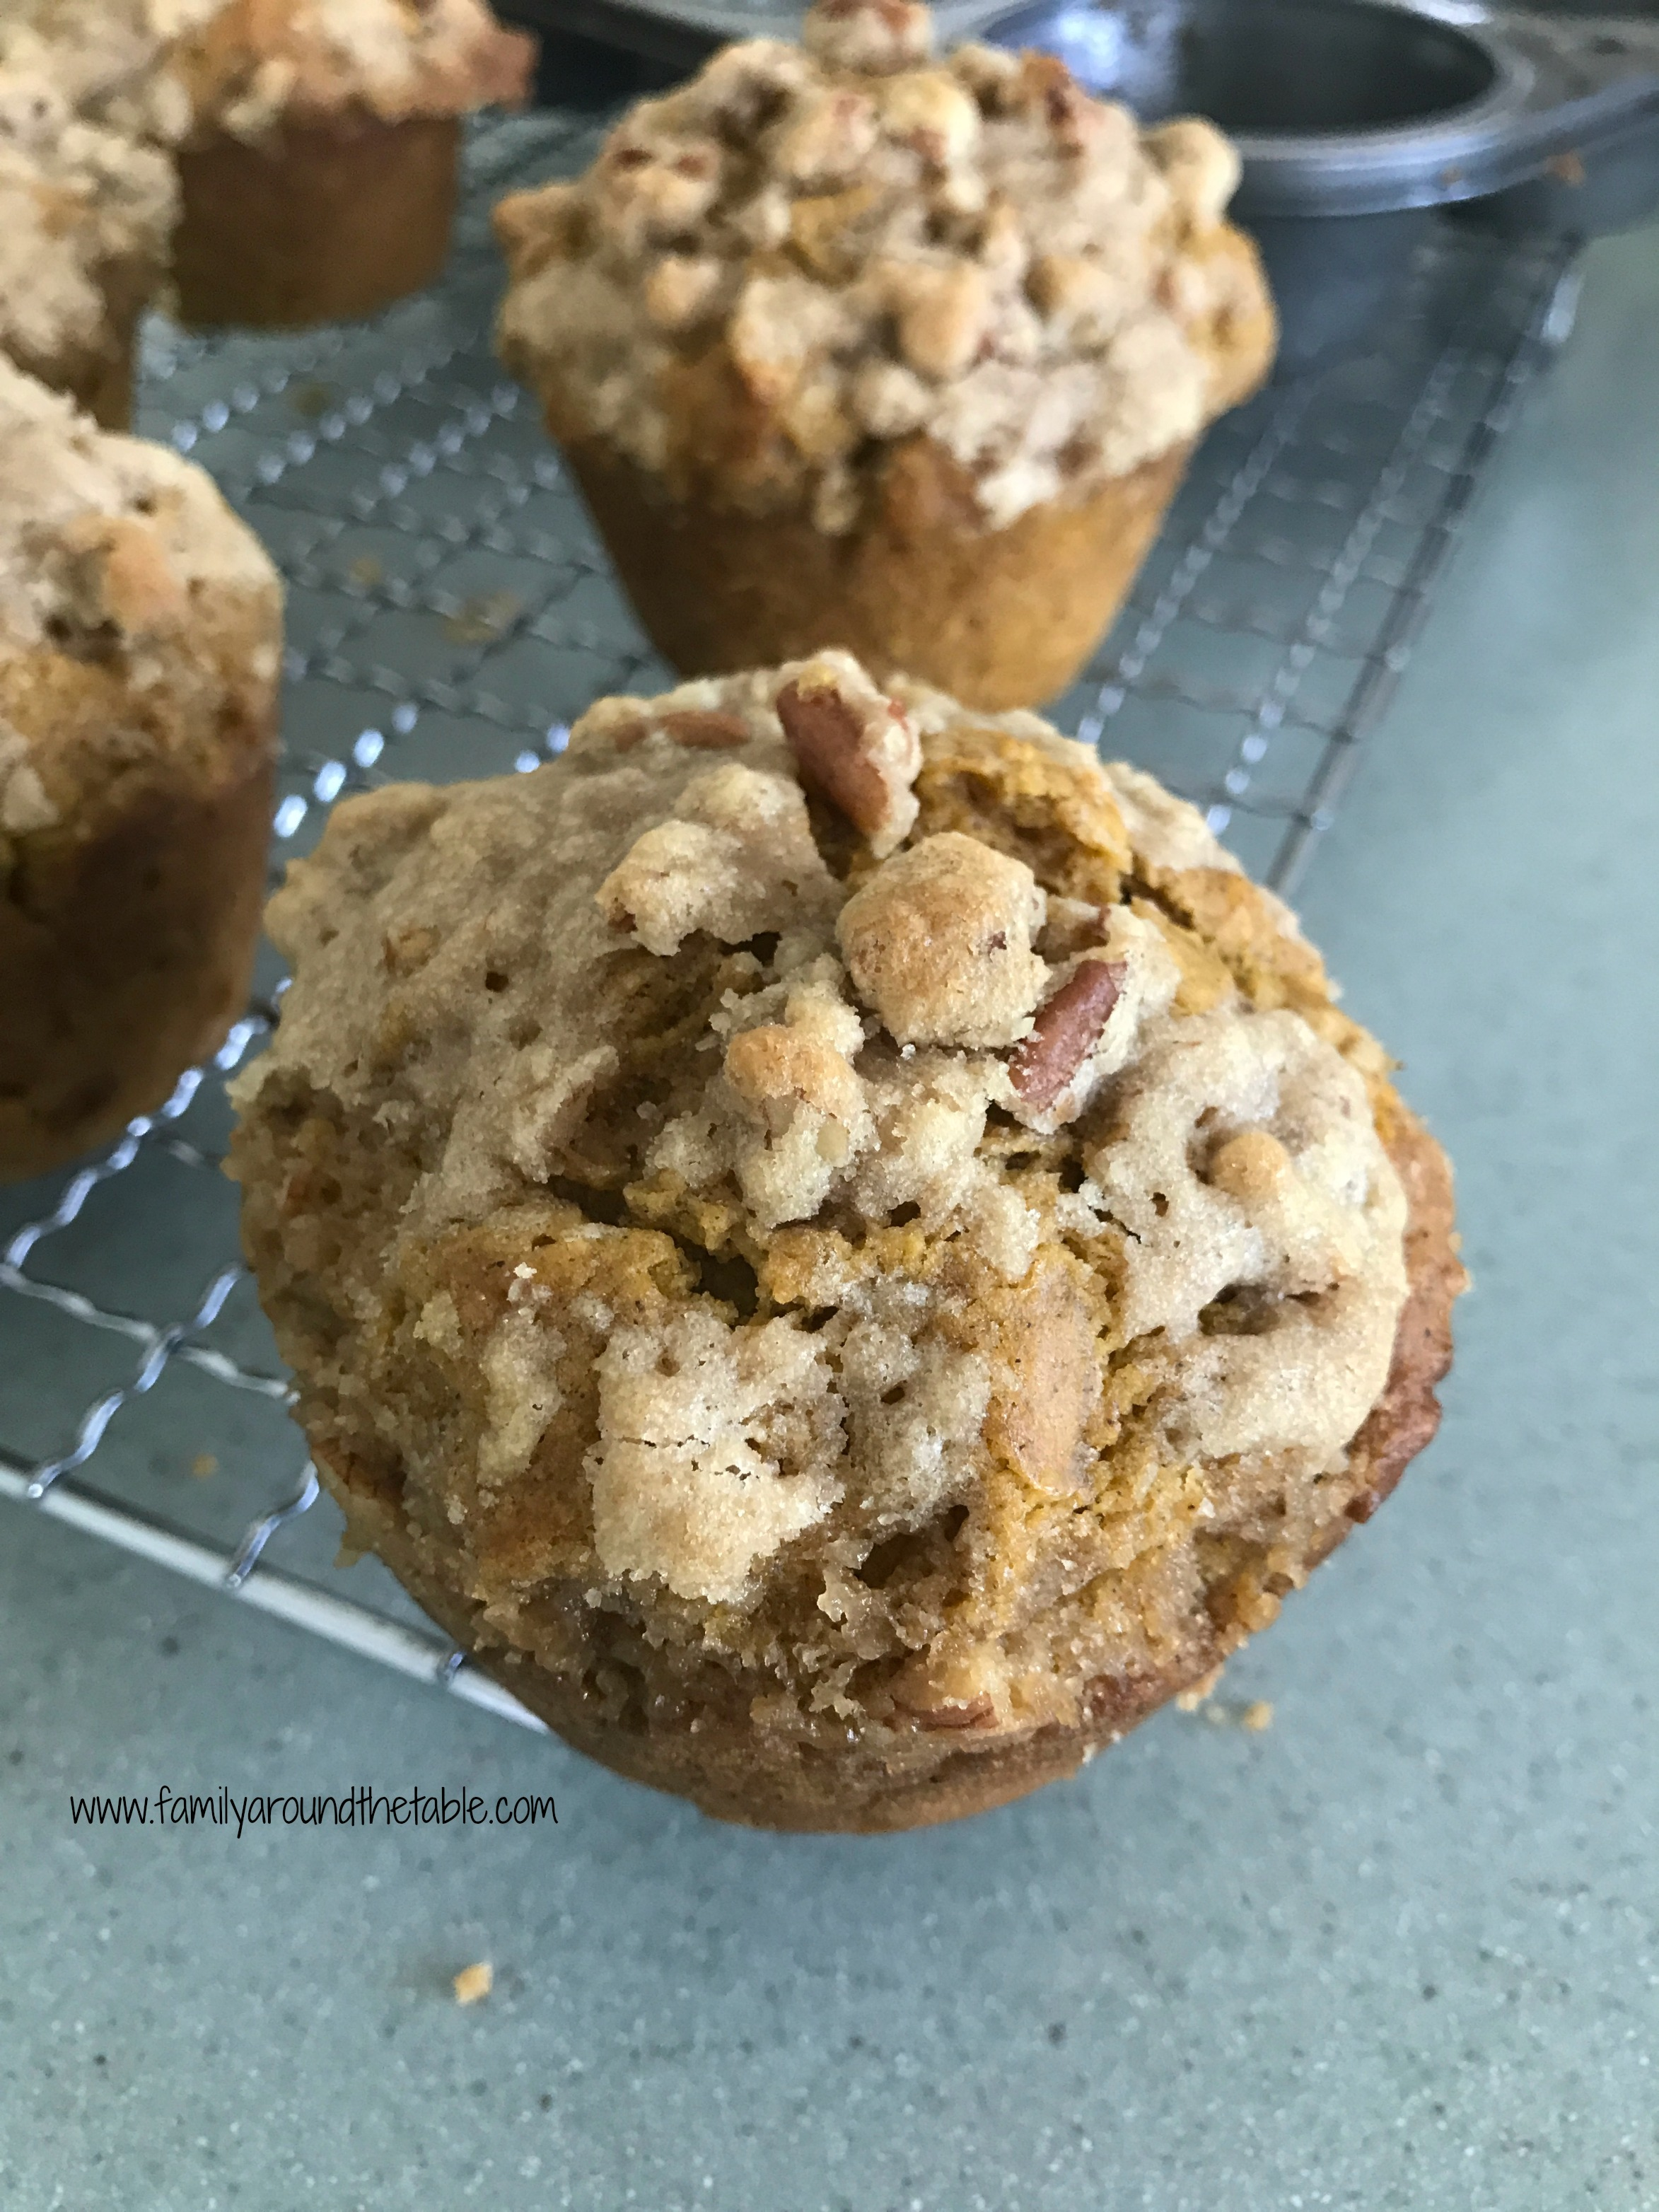 Barefoot Contessa Pumpkin Muffins Jumbo Pumpkin Spice Muffins With Streusel Topping Family Around